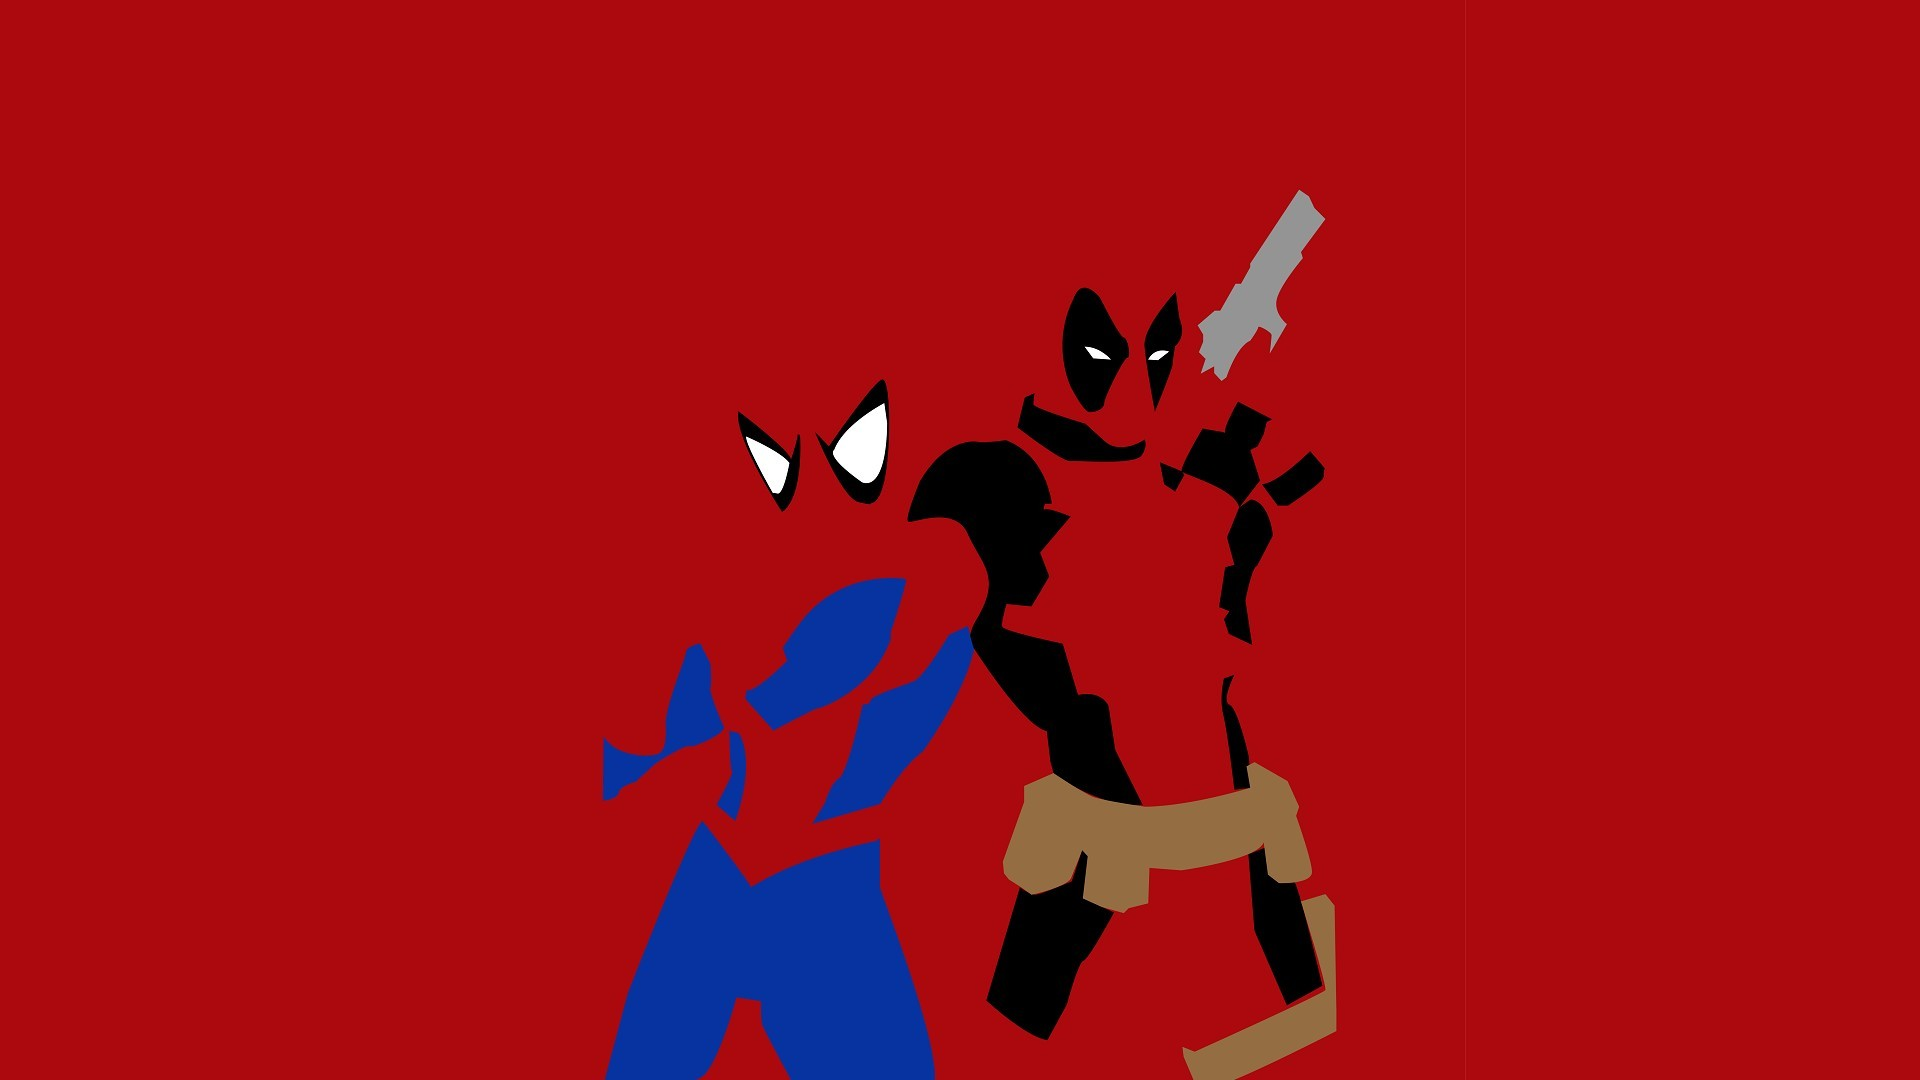 Deadpool And Spiderman Wallpaper 71 Images